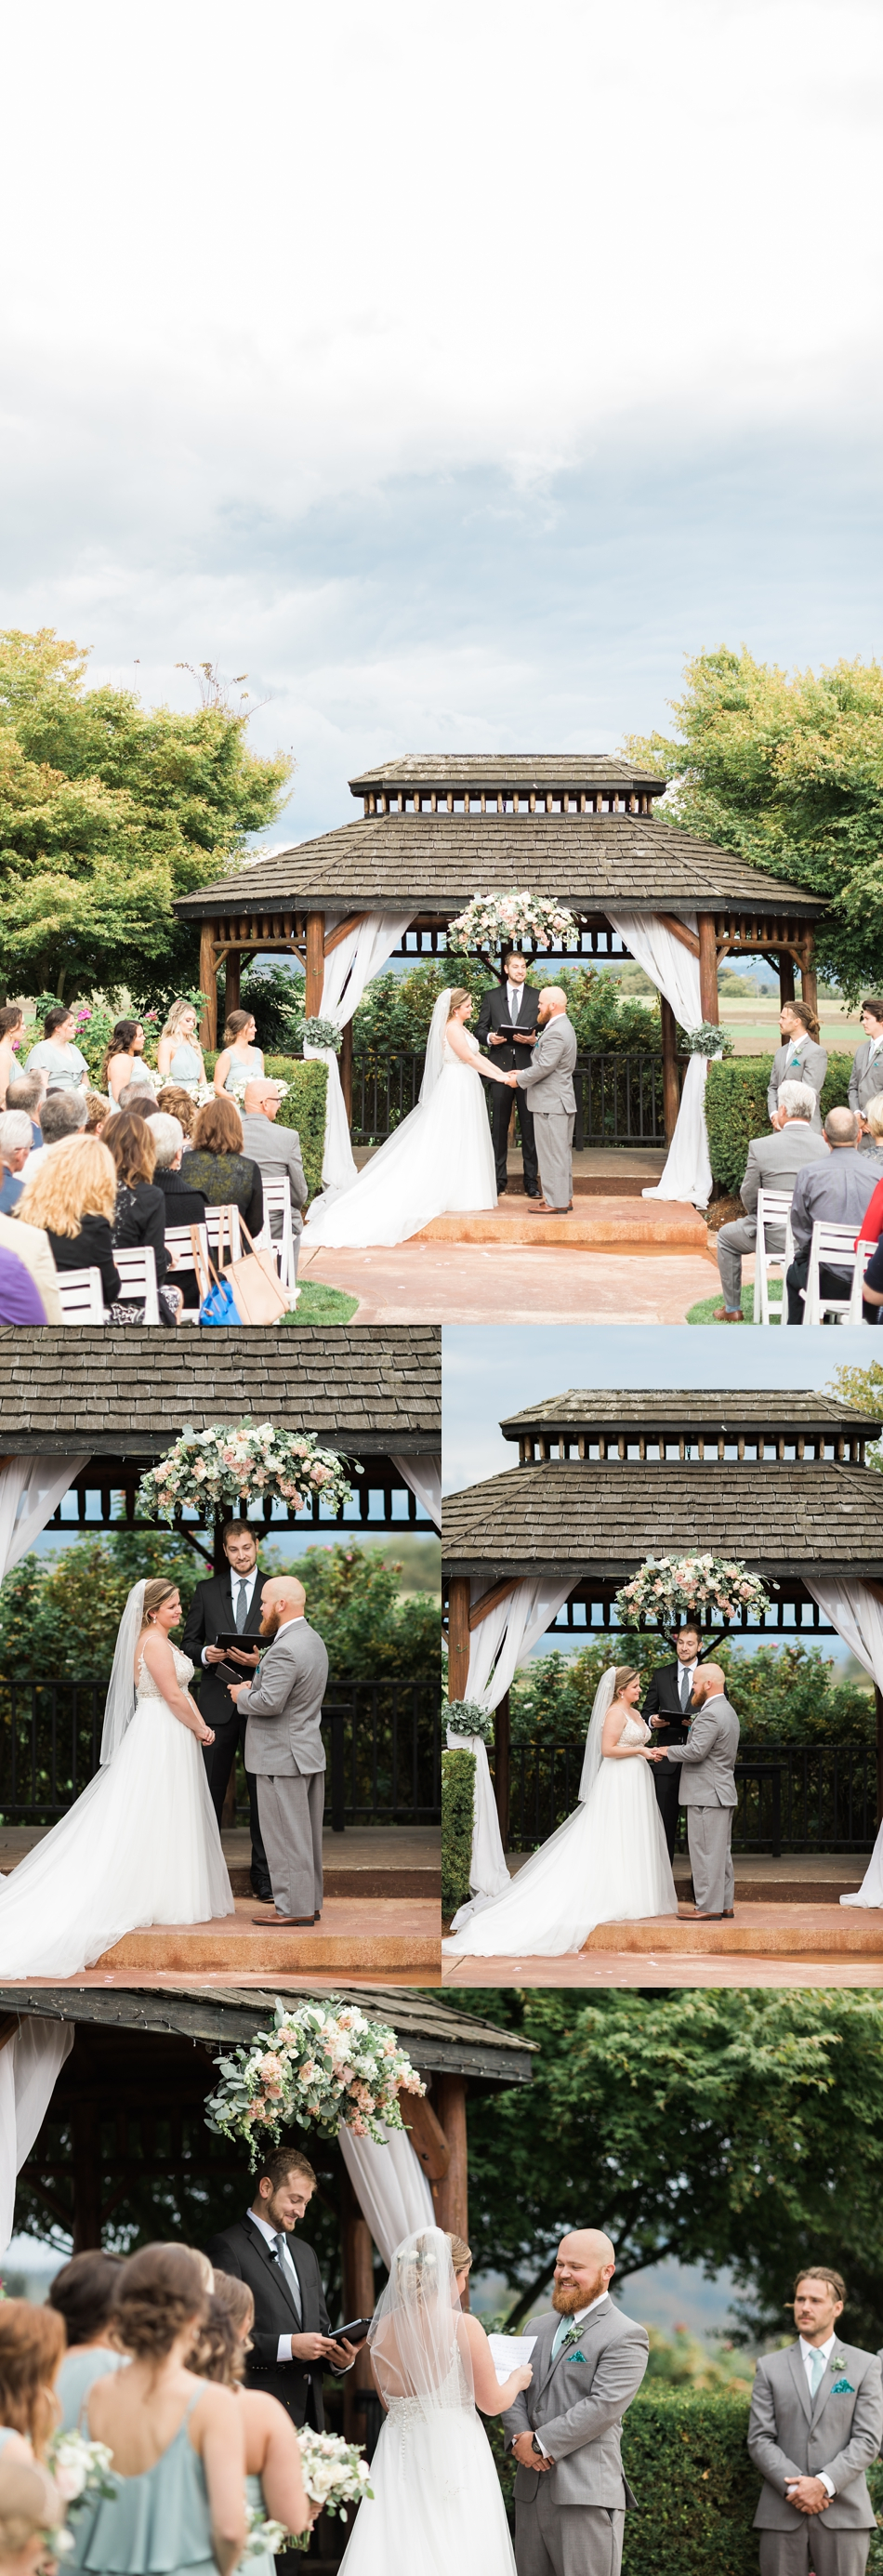 Photo of ceremony at a Hidden Meadows Farms wedding in Snohomish, a rustic yet elegant wedding venue near Seattle. | Joanna Monger Photography